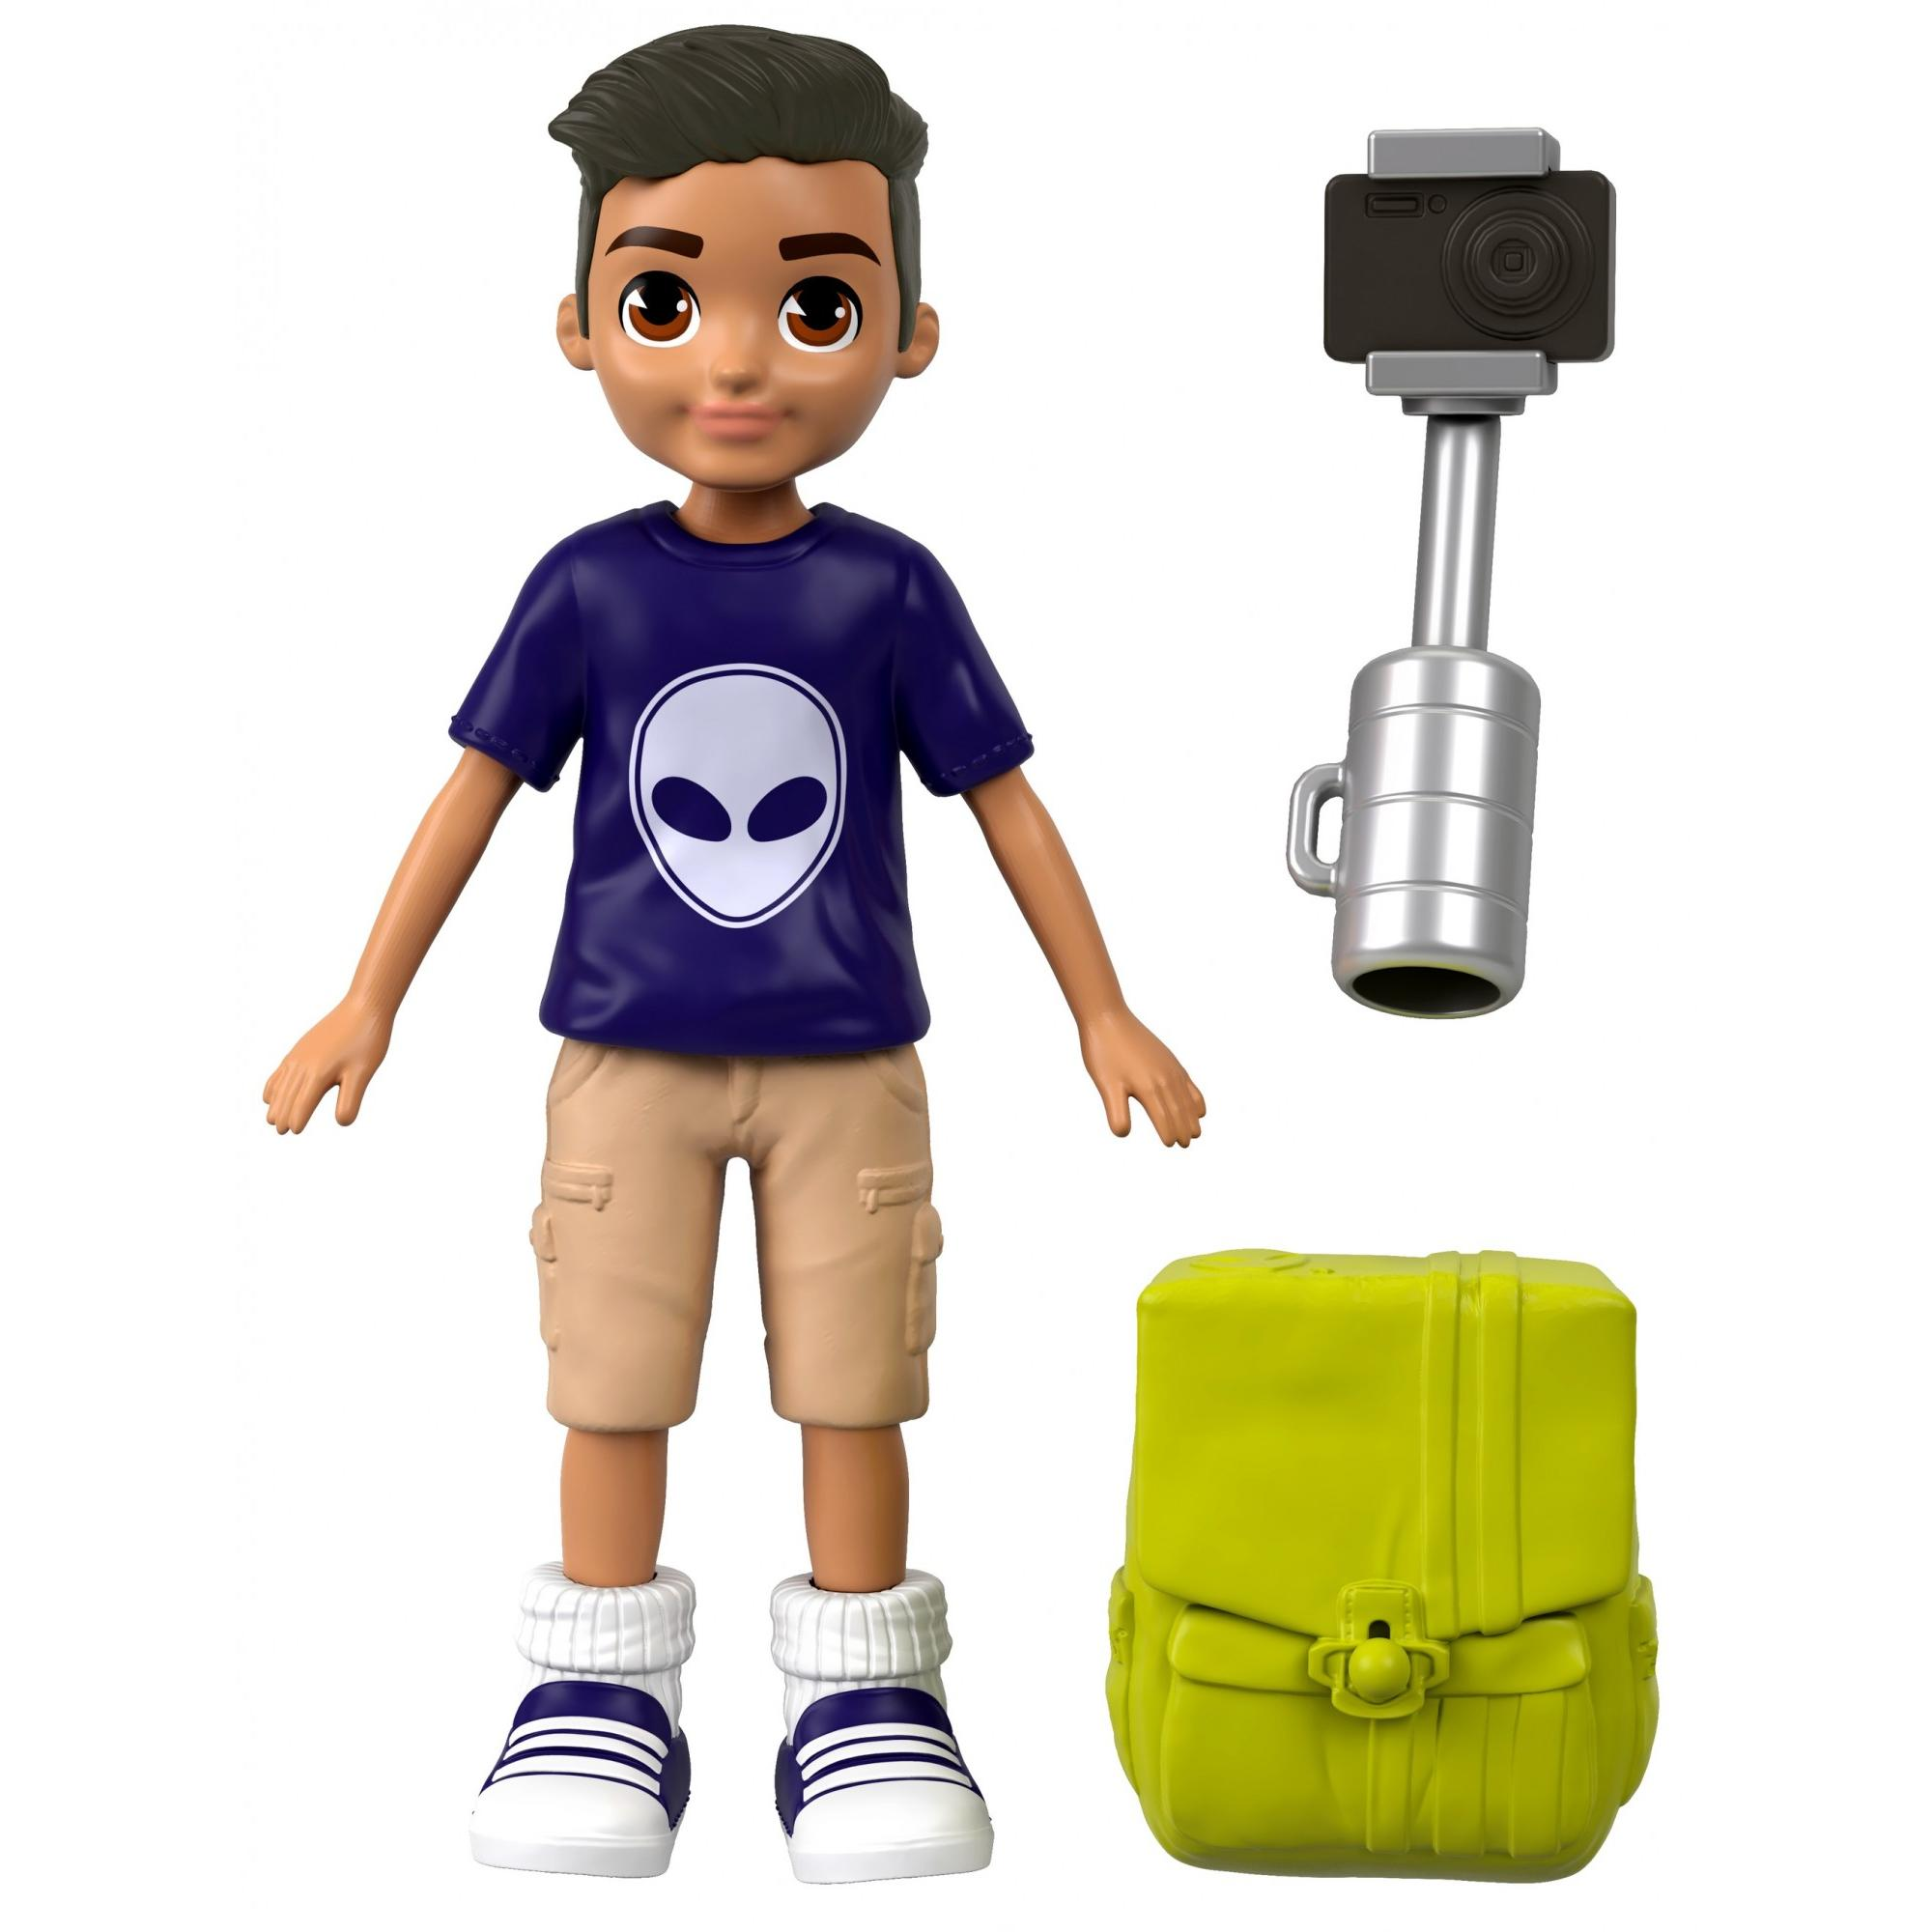 Polly Pocket Active Pose Selfie Stick Photo Journalistic Adventure Nicolas Doll